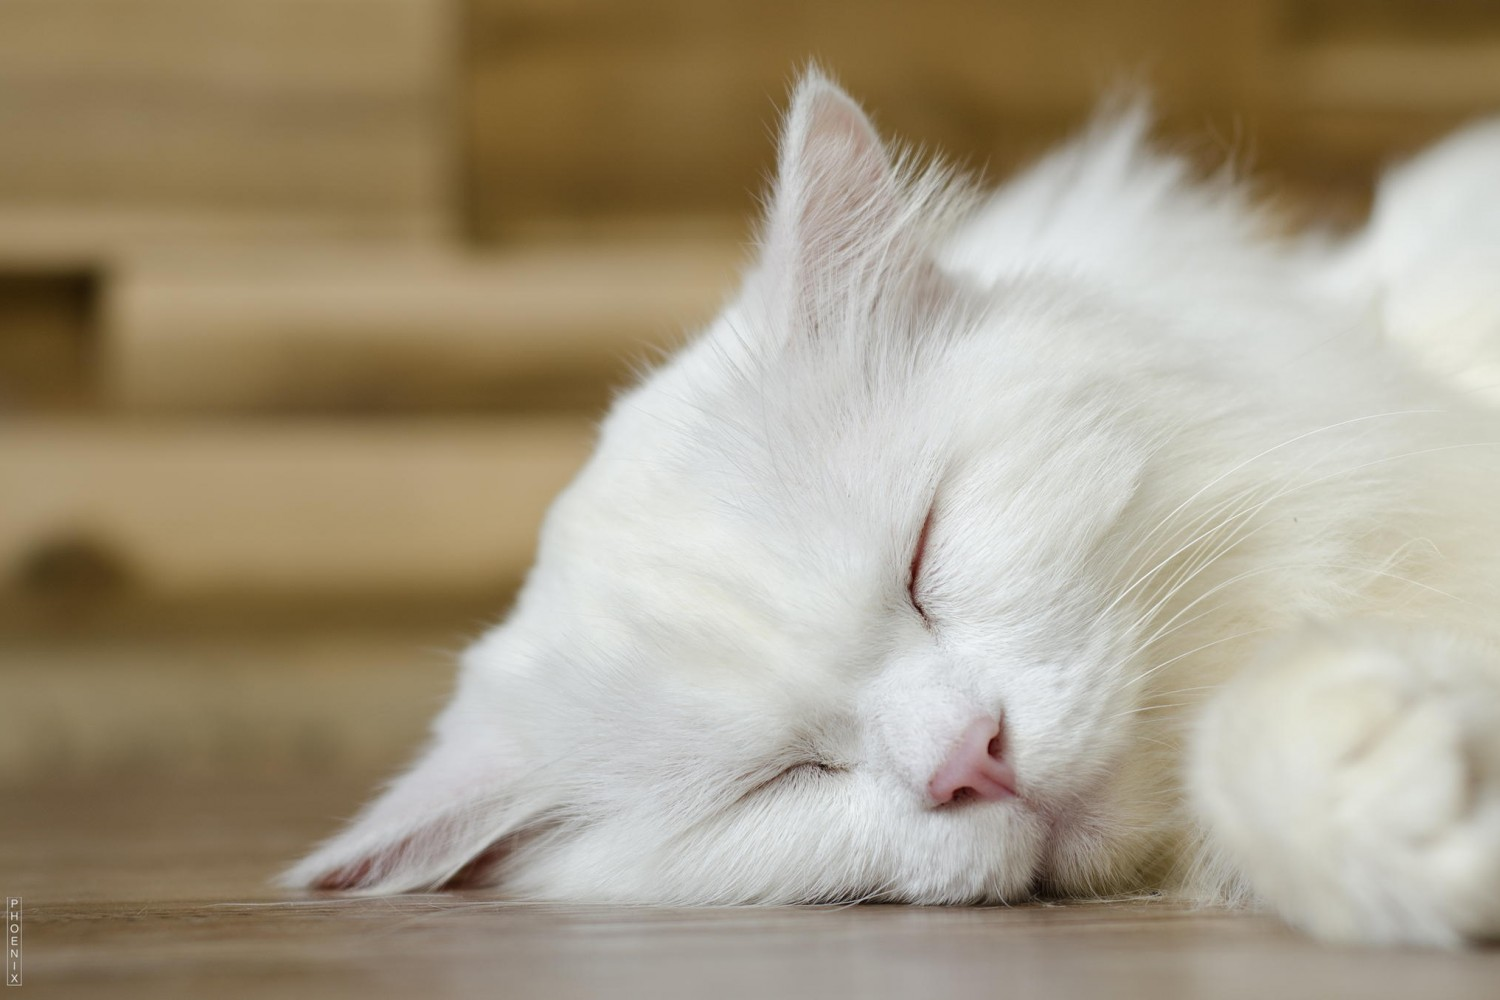 Hoang's Story: A Sleeping Cat Photo Made My Year in 2014